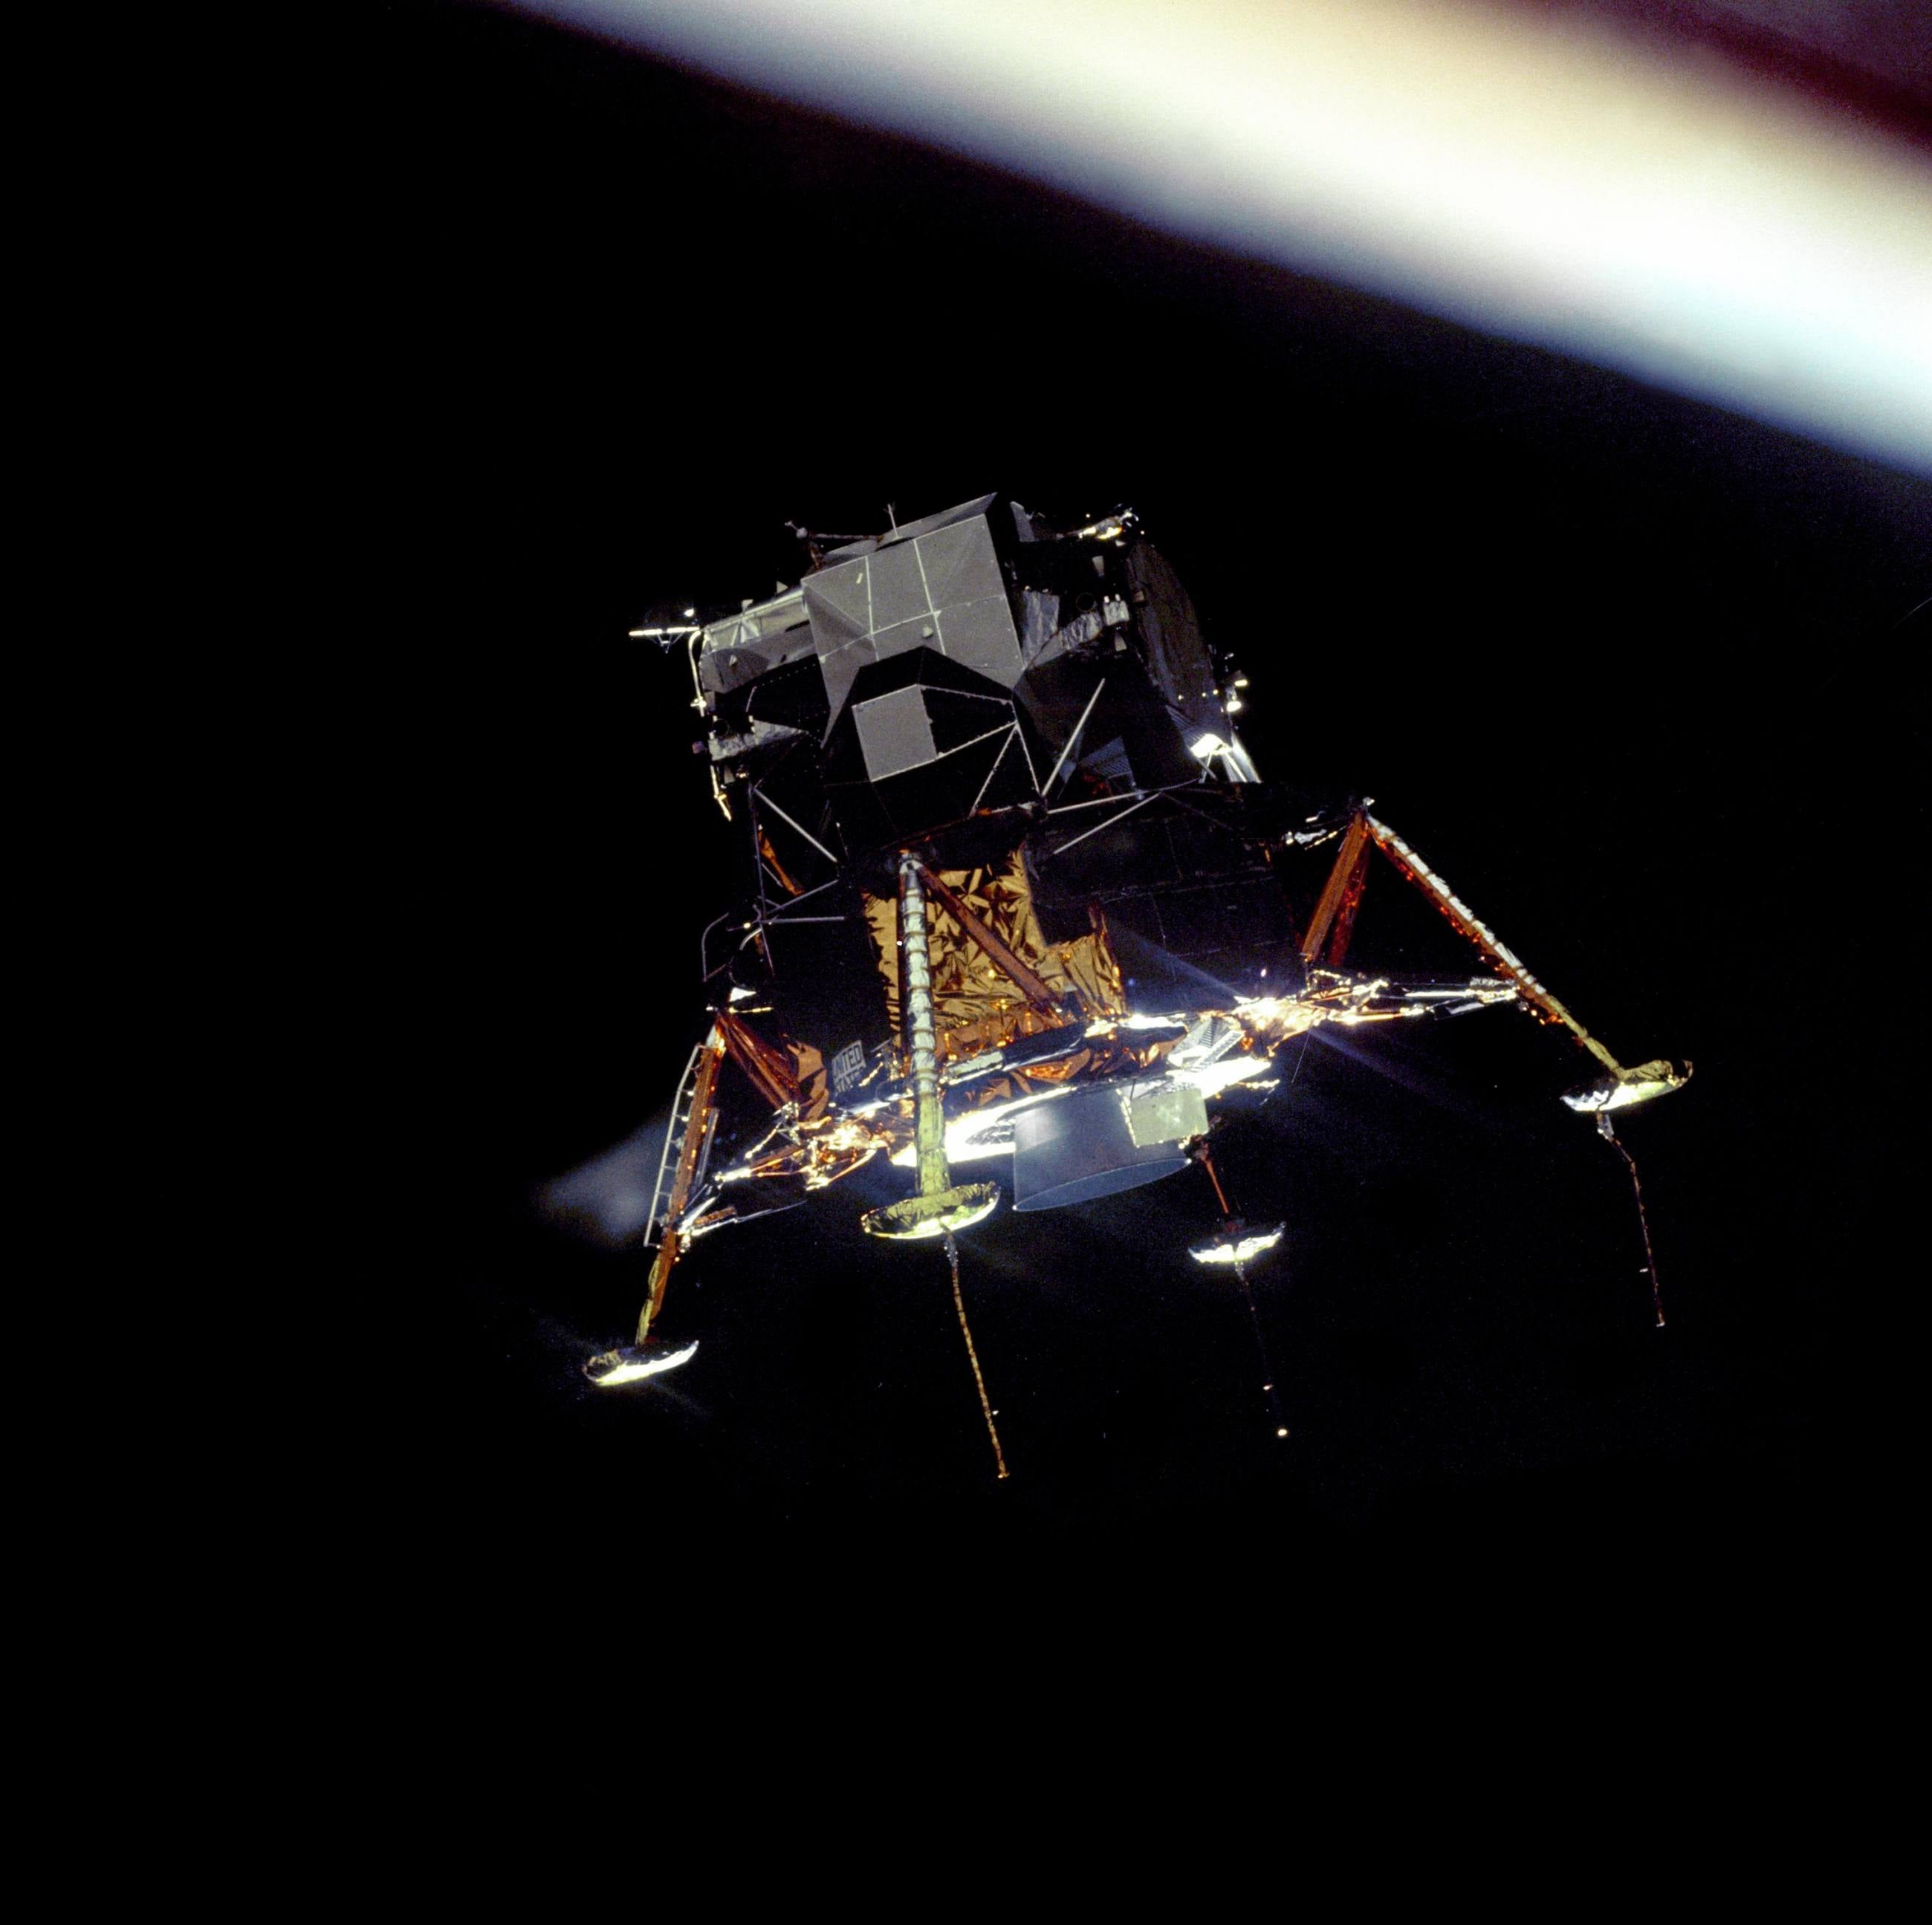 Apollo 11 Lunar Module Eagle in orbit